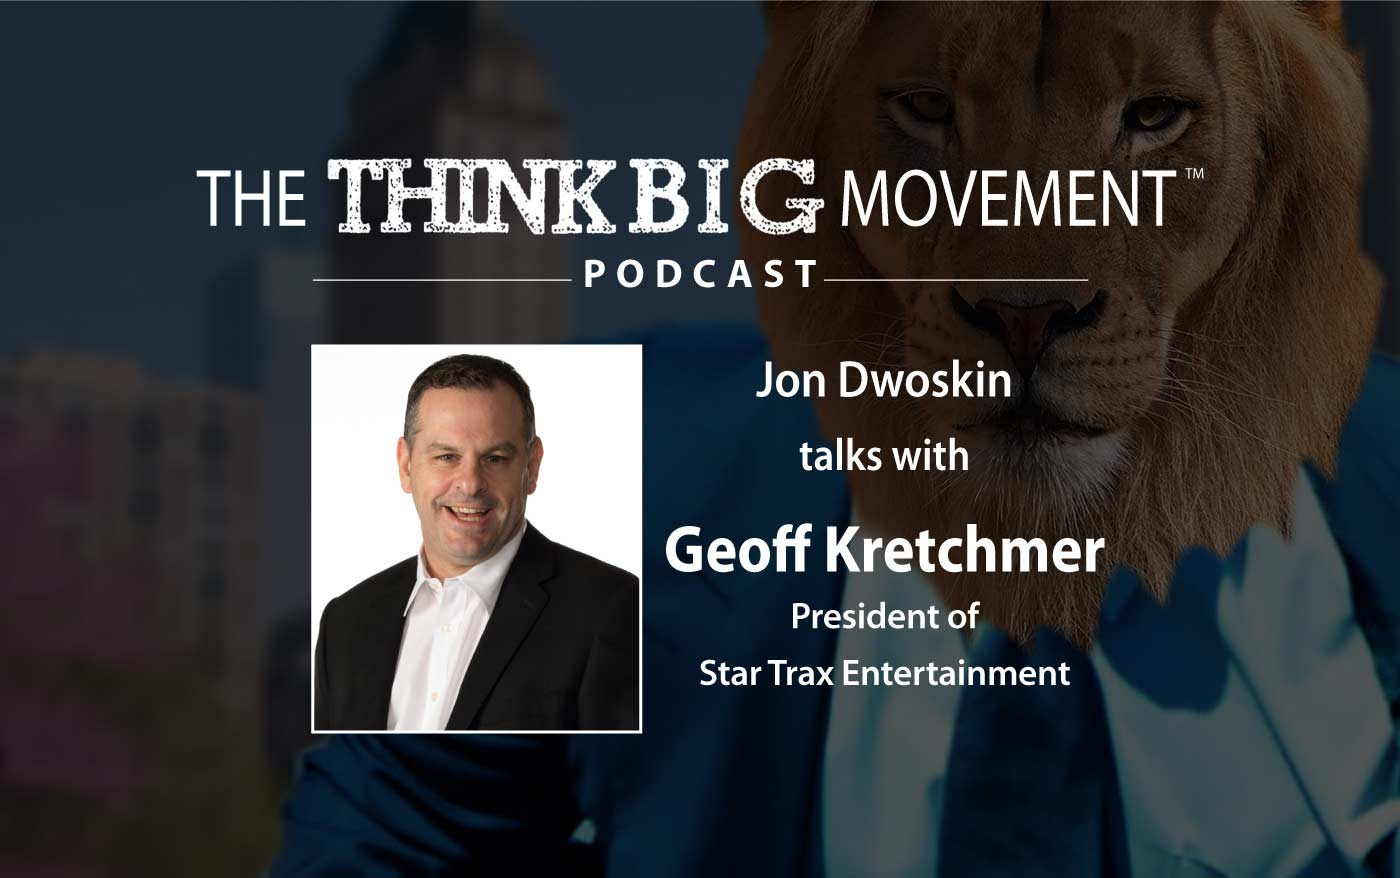 Think Big Movement Podcast - Jon Dwoskin Interviews Geoff Kretchmer - President of Star Trax Entertainment